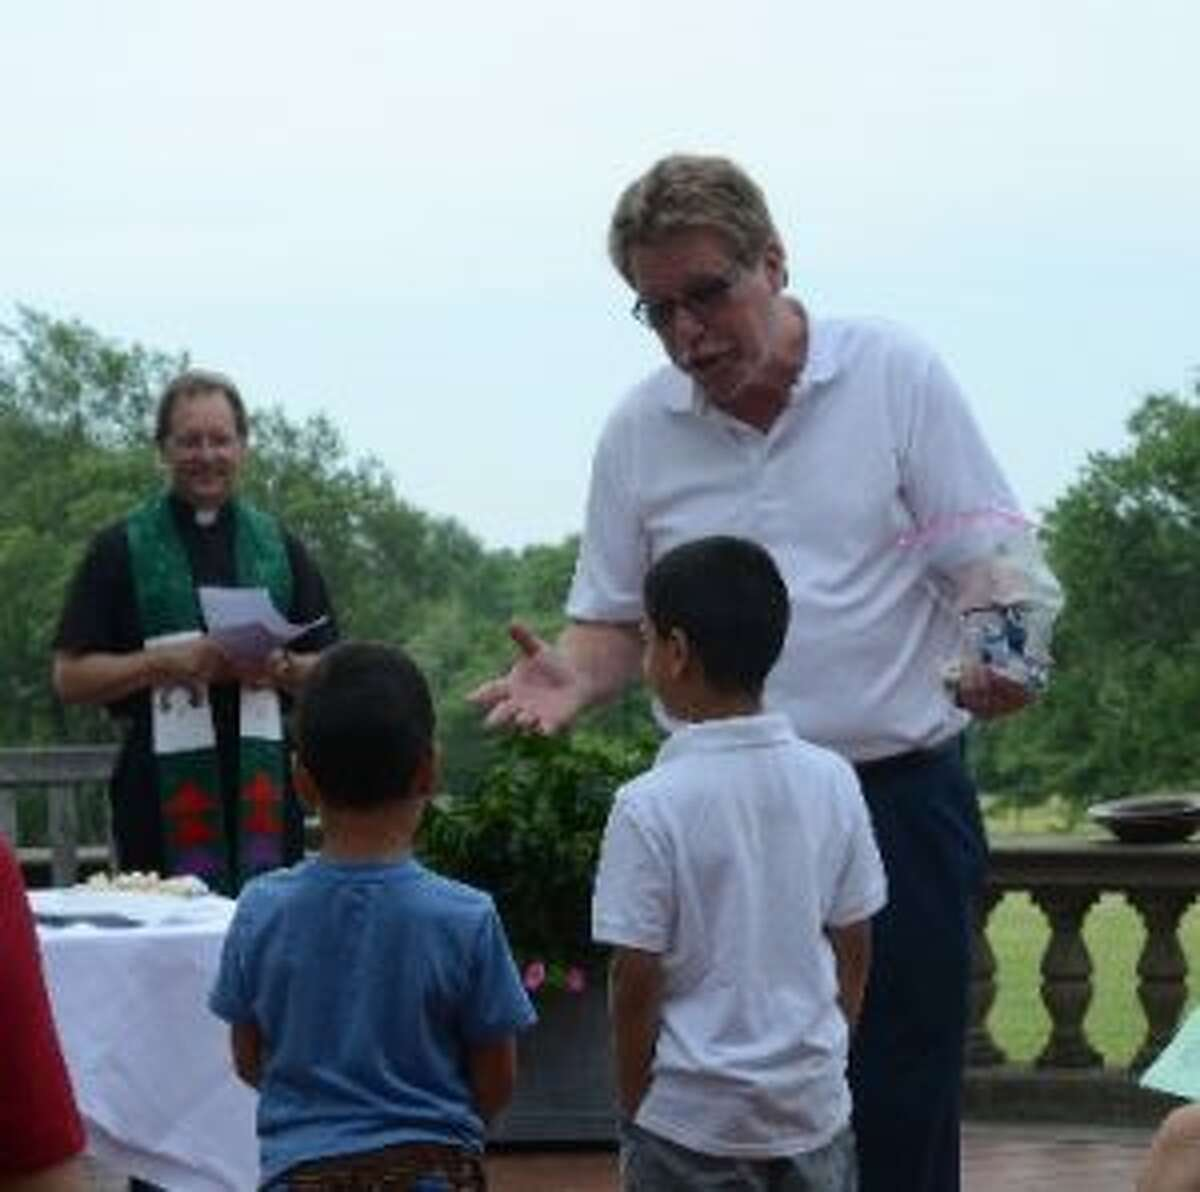 Pastor Eric Fjeldal talks to children about building the world with love, as Rev. Derrick Fallon looks on. - Greg Reilly photo